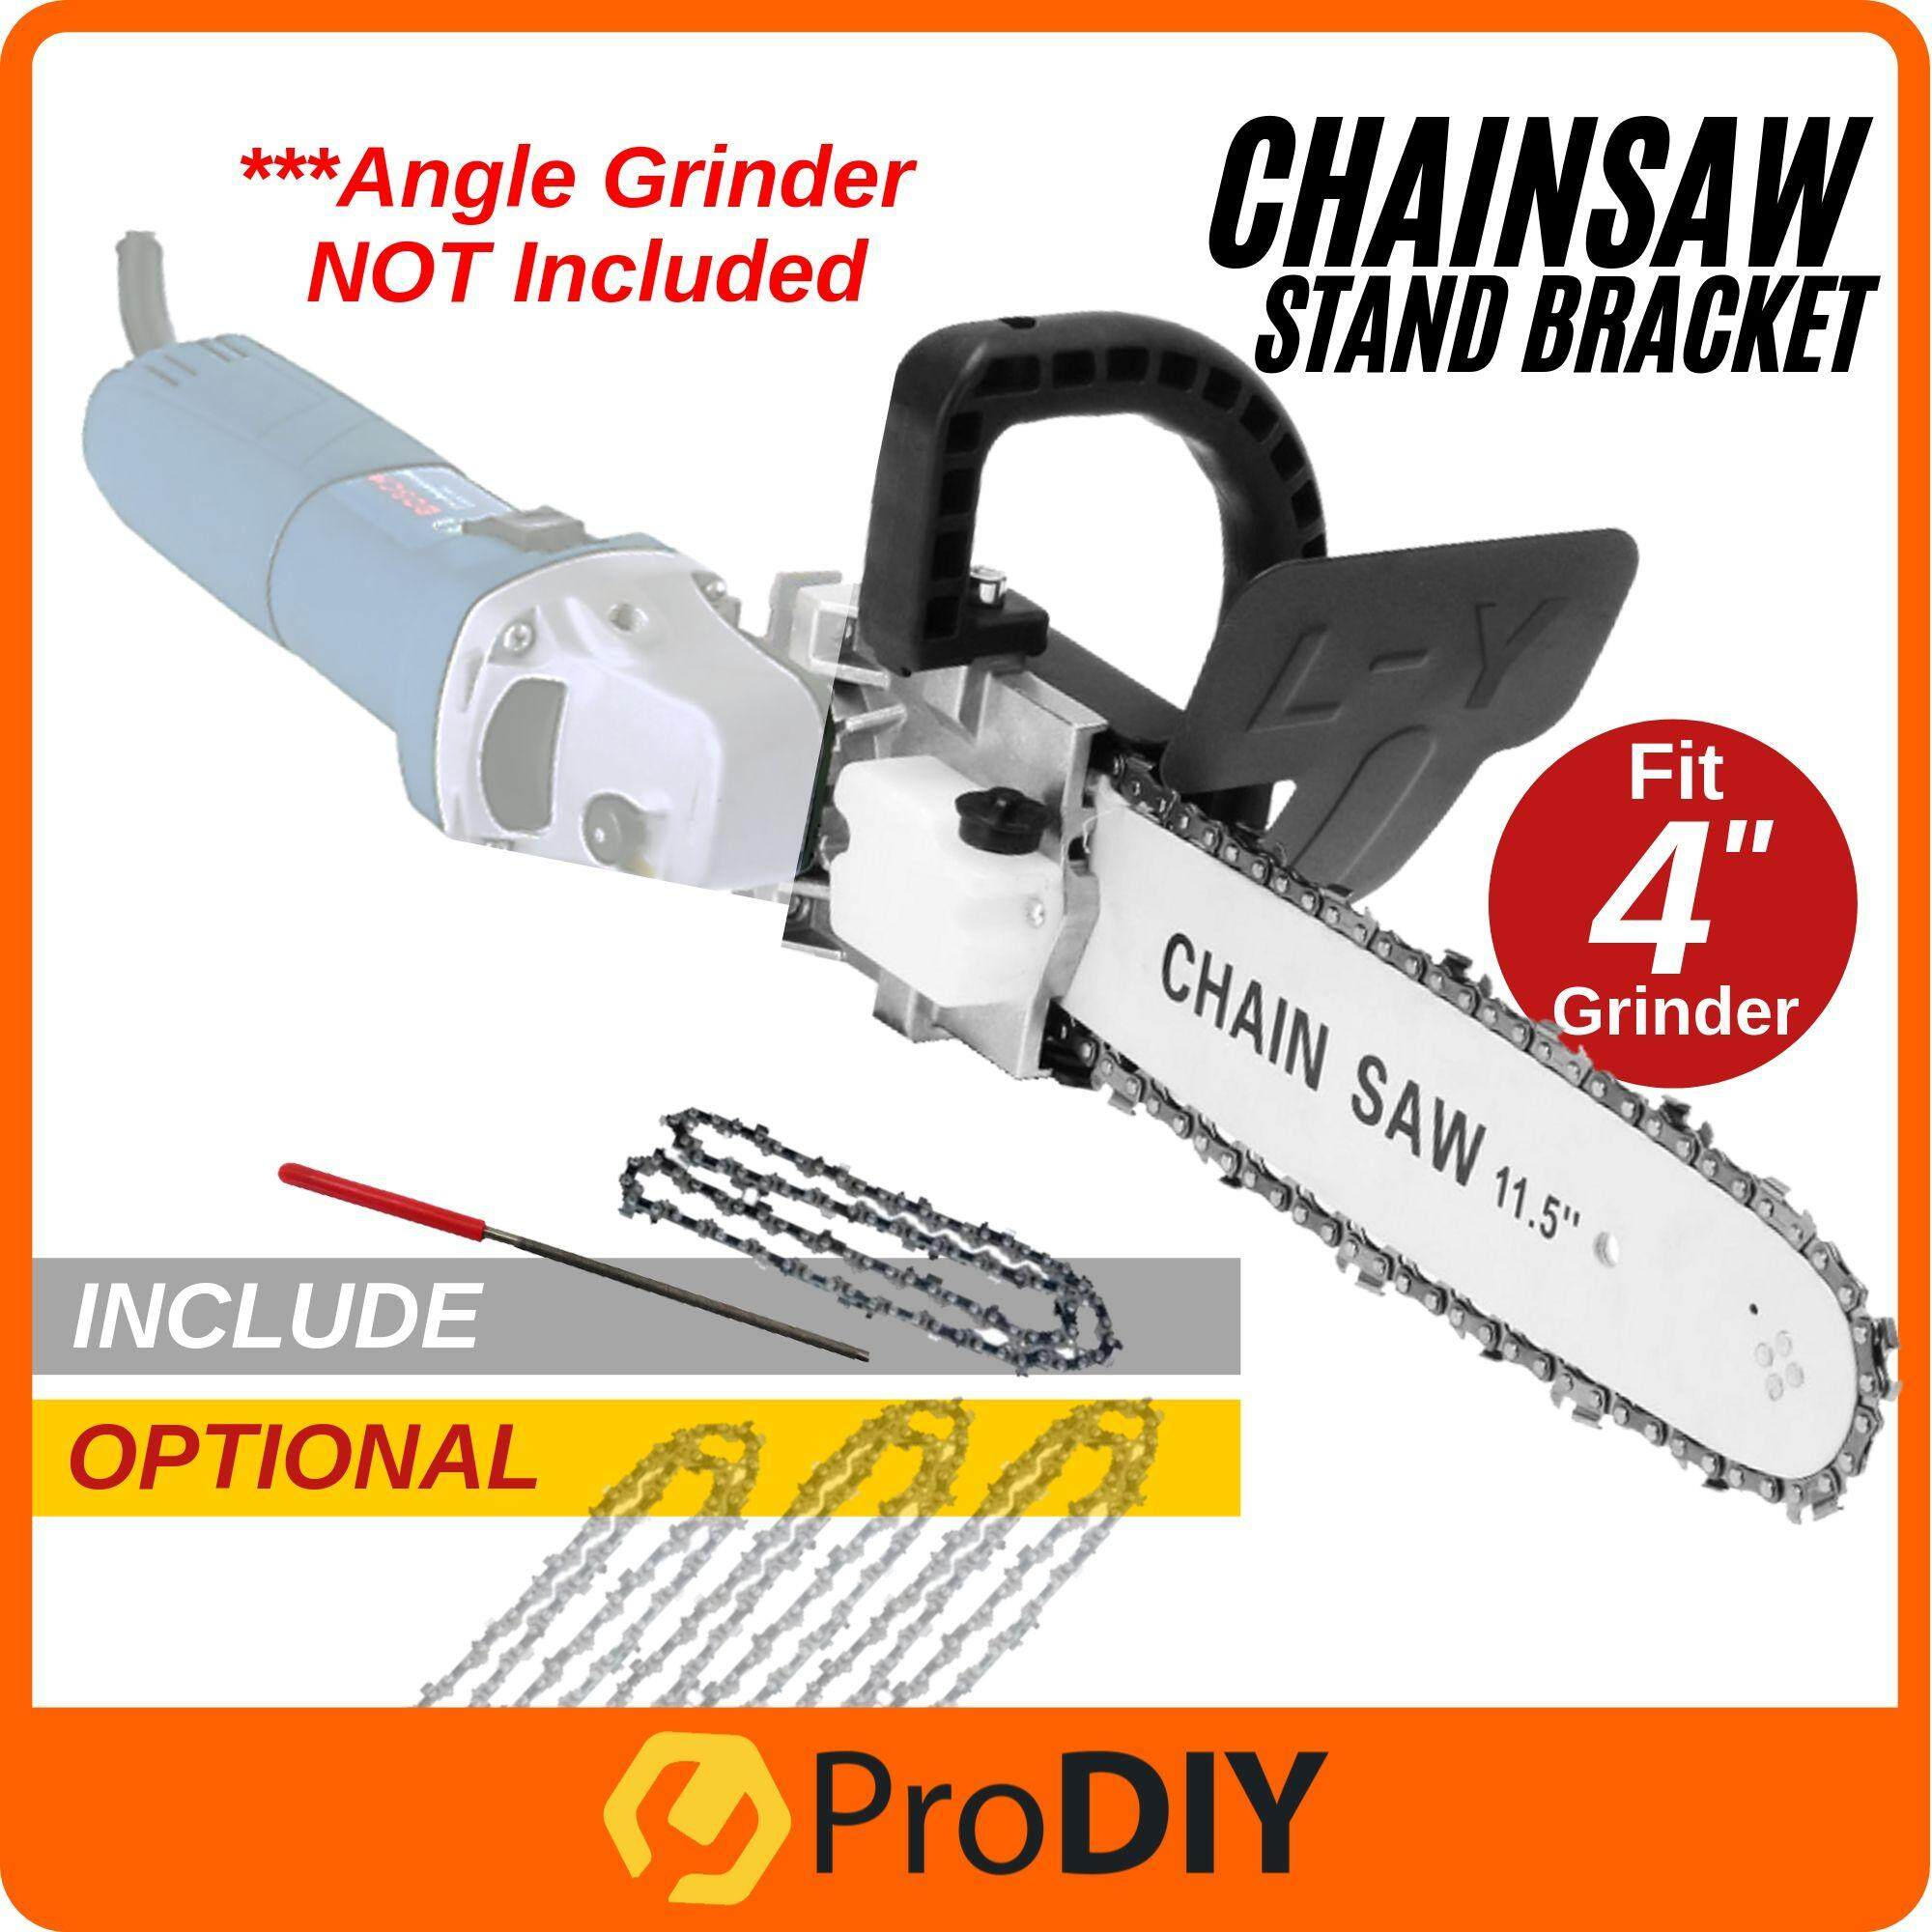 Fox / PRO-DIY Chainsaw Stand Bracket Attachment WITHOUT Angle Grinder Chain Saw For All 4  Angle Grinder ONLY FOC Chain Saw File image on snachetto.com